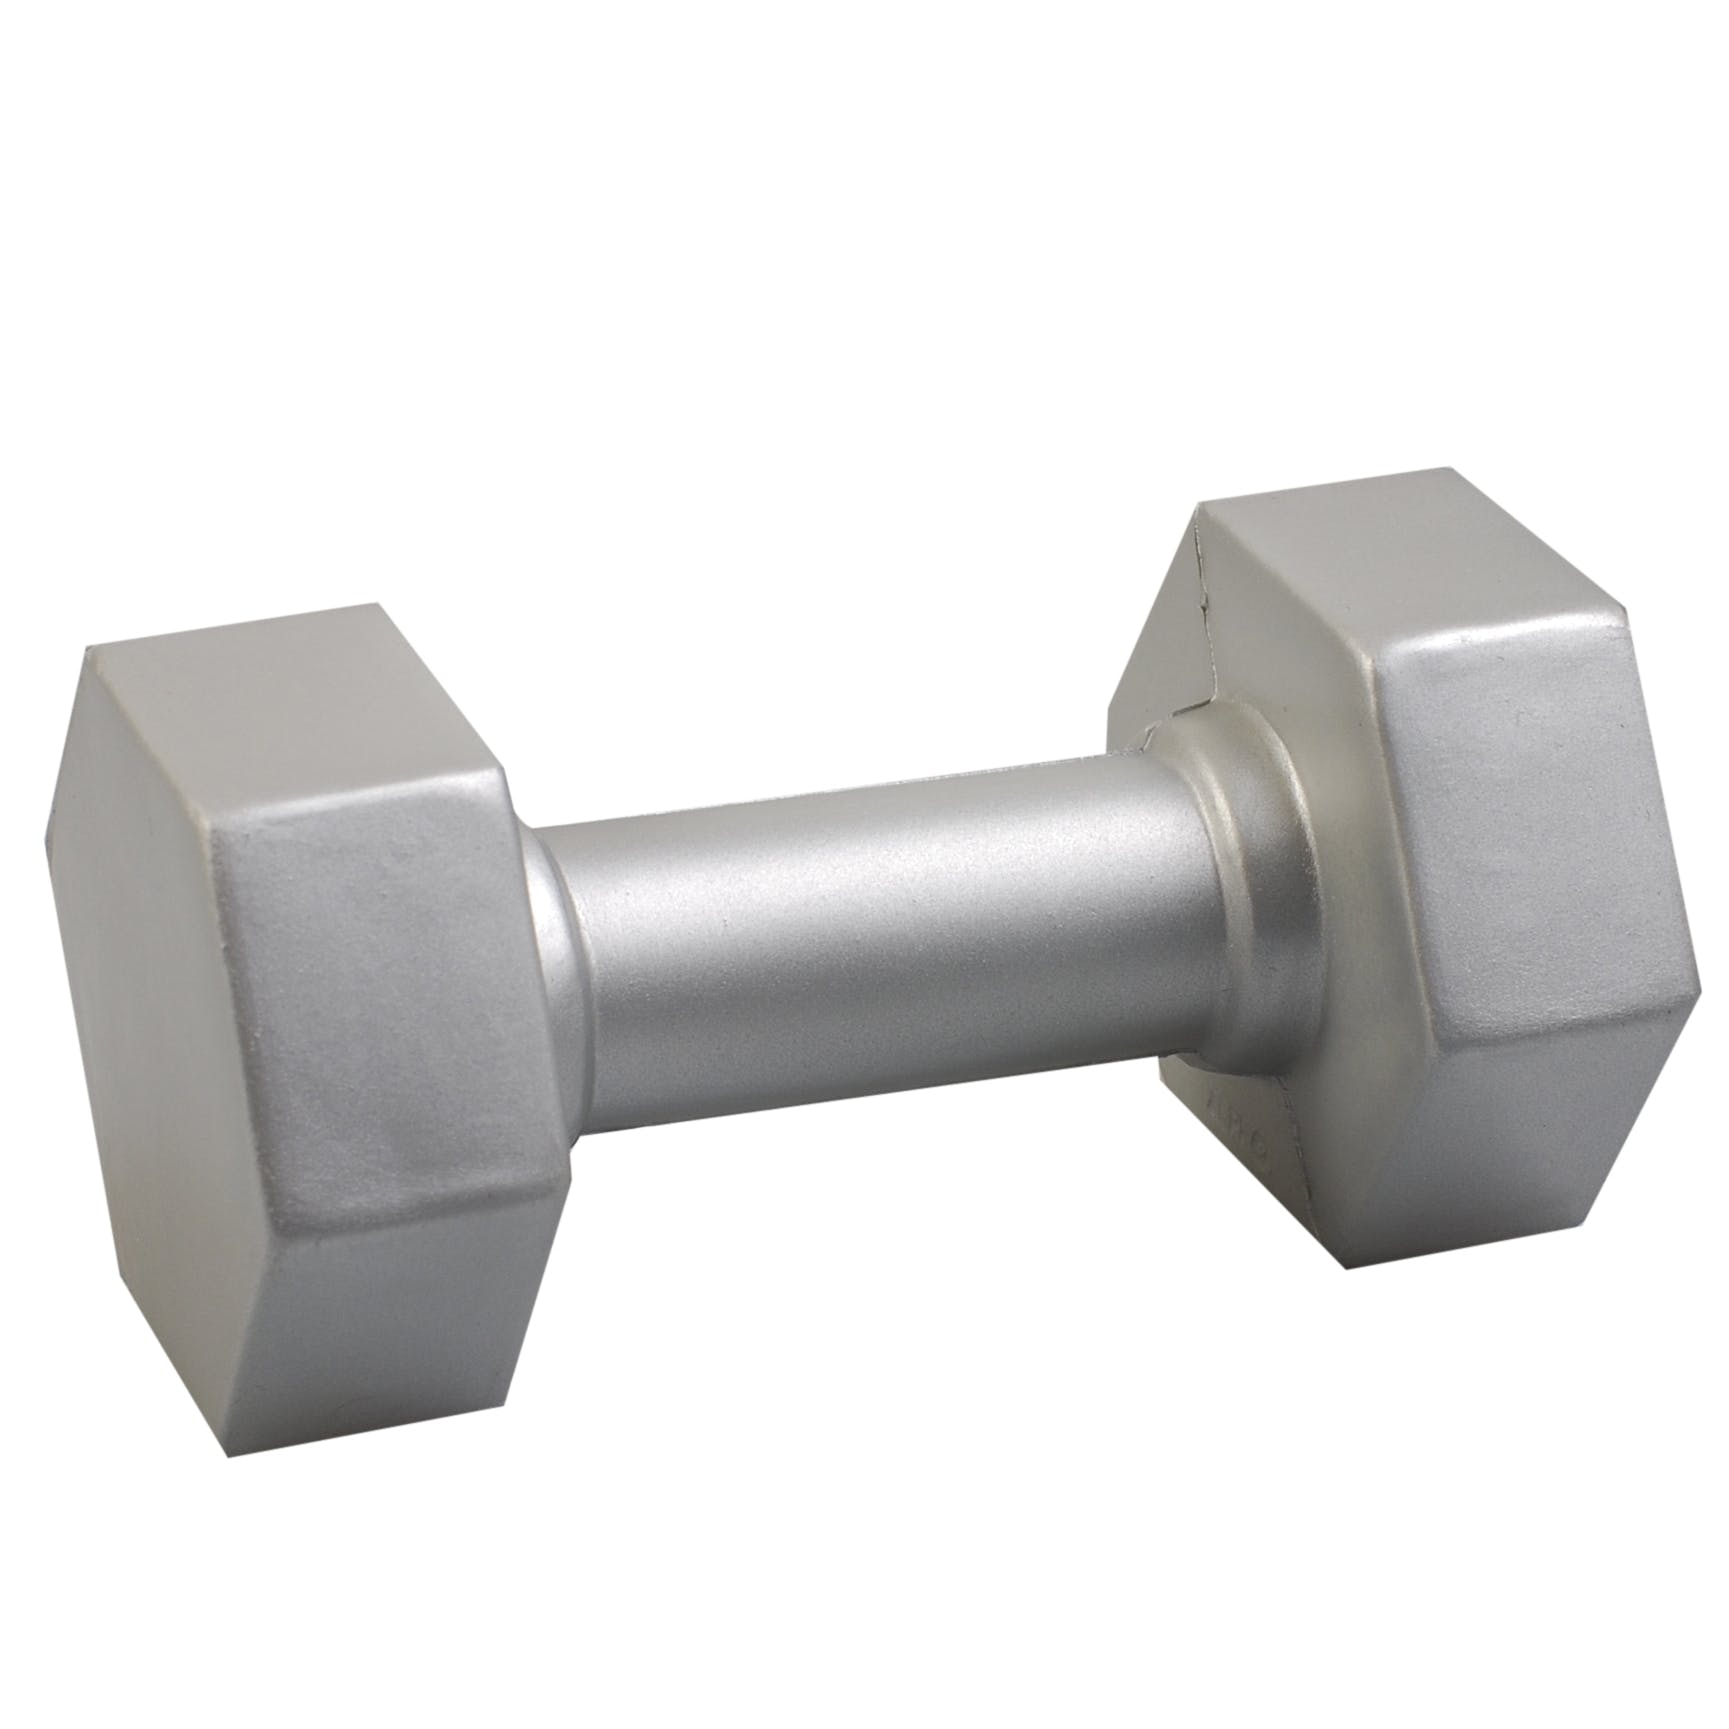 Dumbbell Shaped Stress Reliever (Item # ODKNO-FPMAB) Stress reliever sold by InkEasy